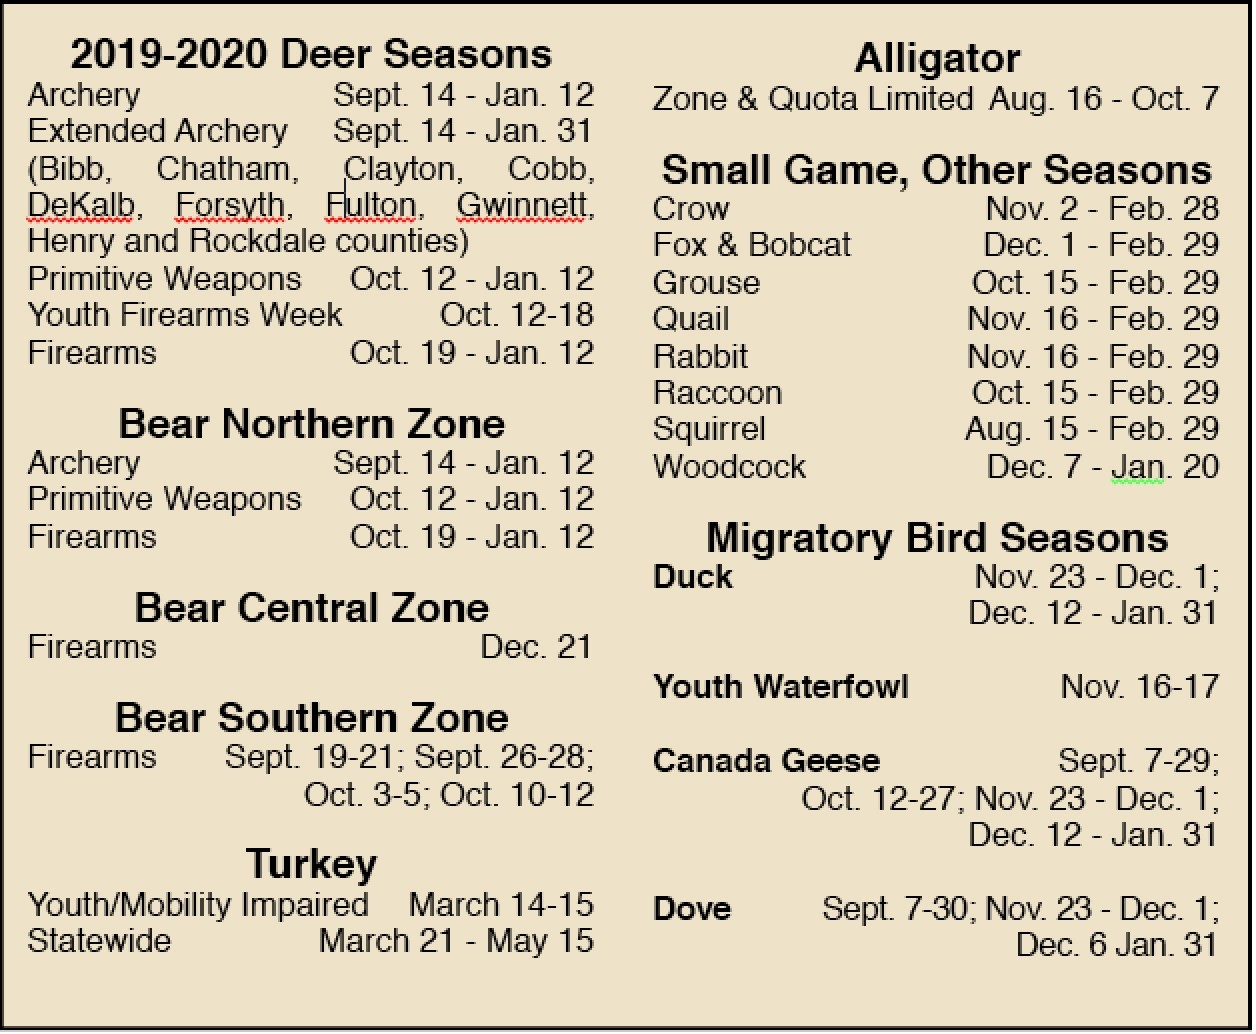 2019-2020 Guide To Georgia Hunting Season Dates  Deer Season For2020 For Georgia